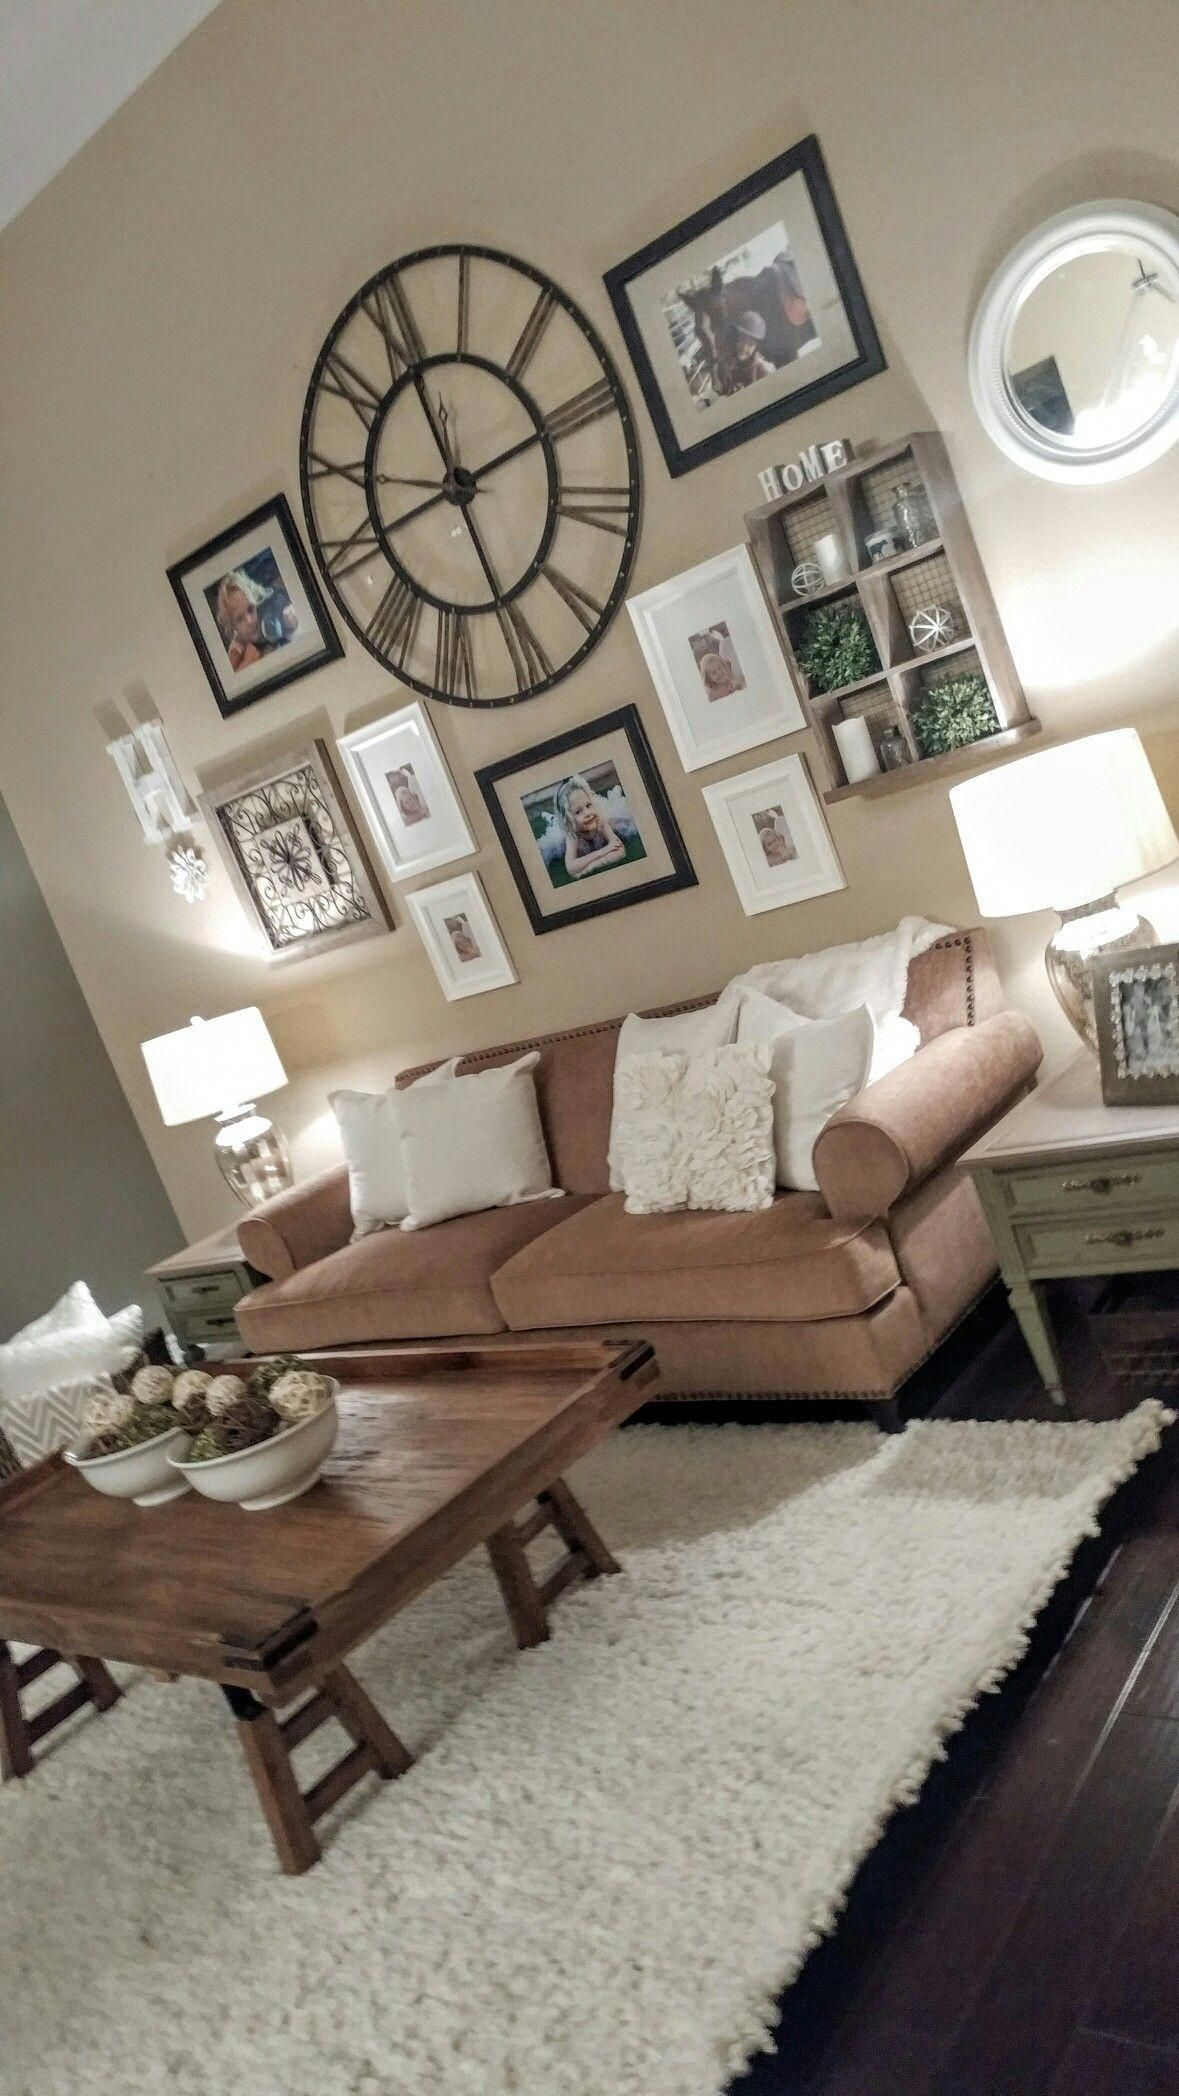 living room clocks next 1 bedroom ideas our wall decor are here to kick start your door